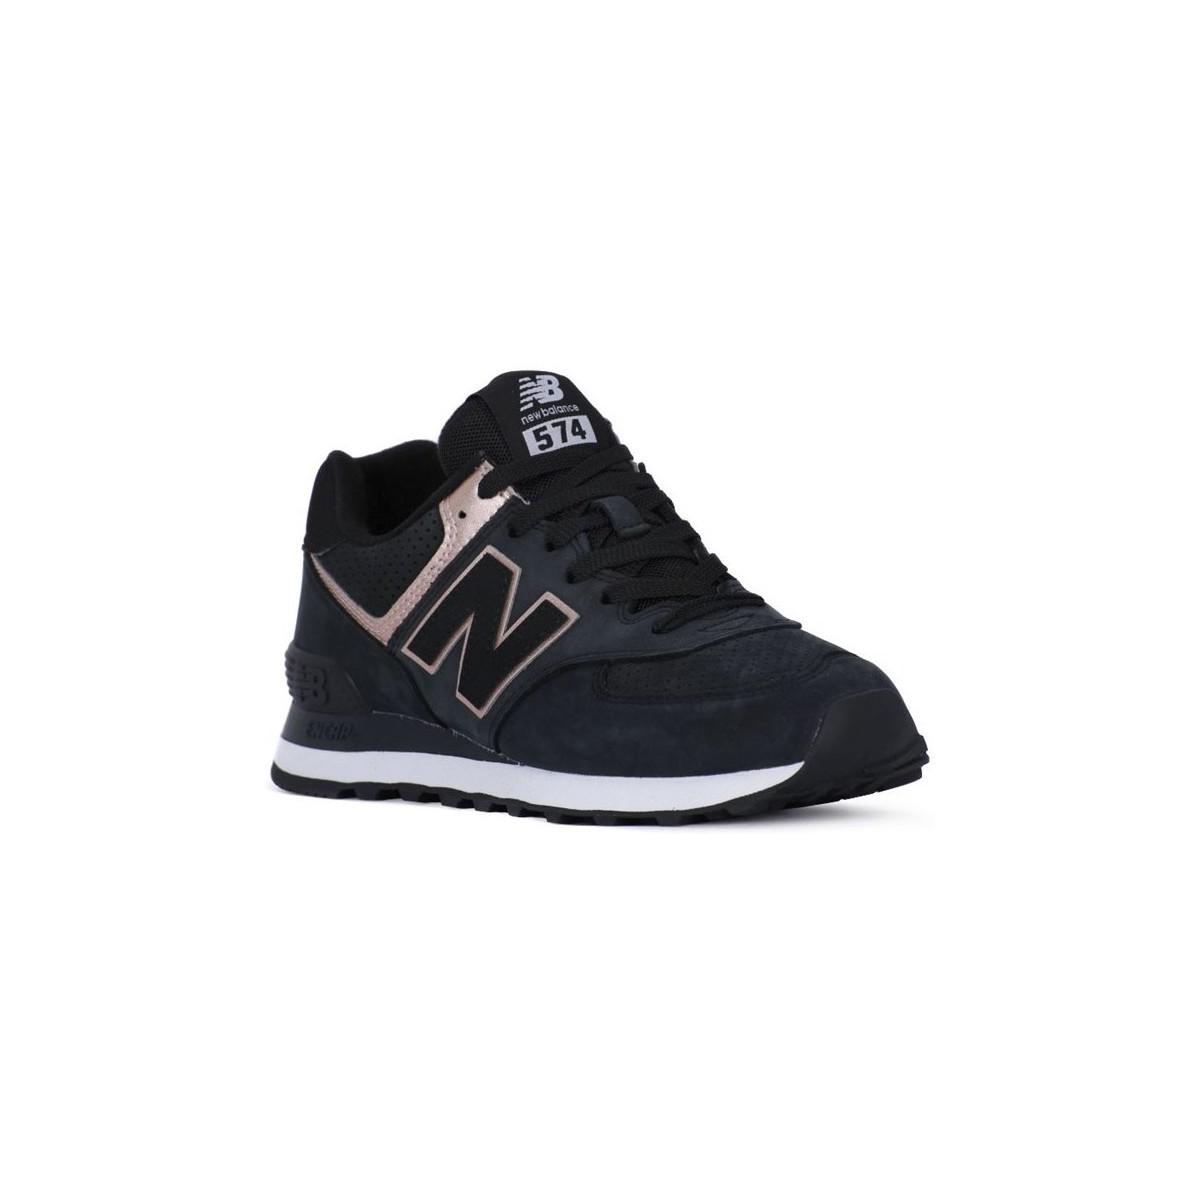 online store 92c4e 67757 New Balance Wl574nbk Women's Shoes (trainers) In Black in ...